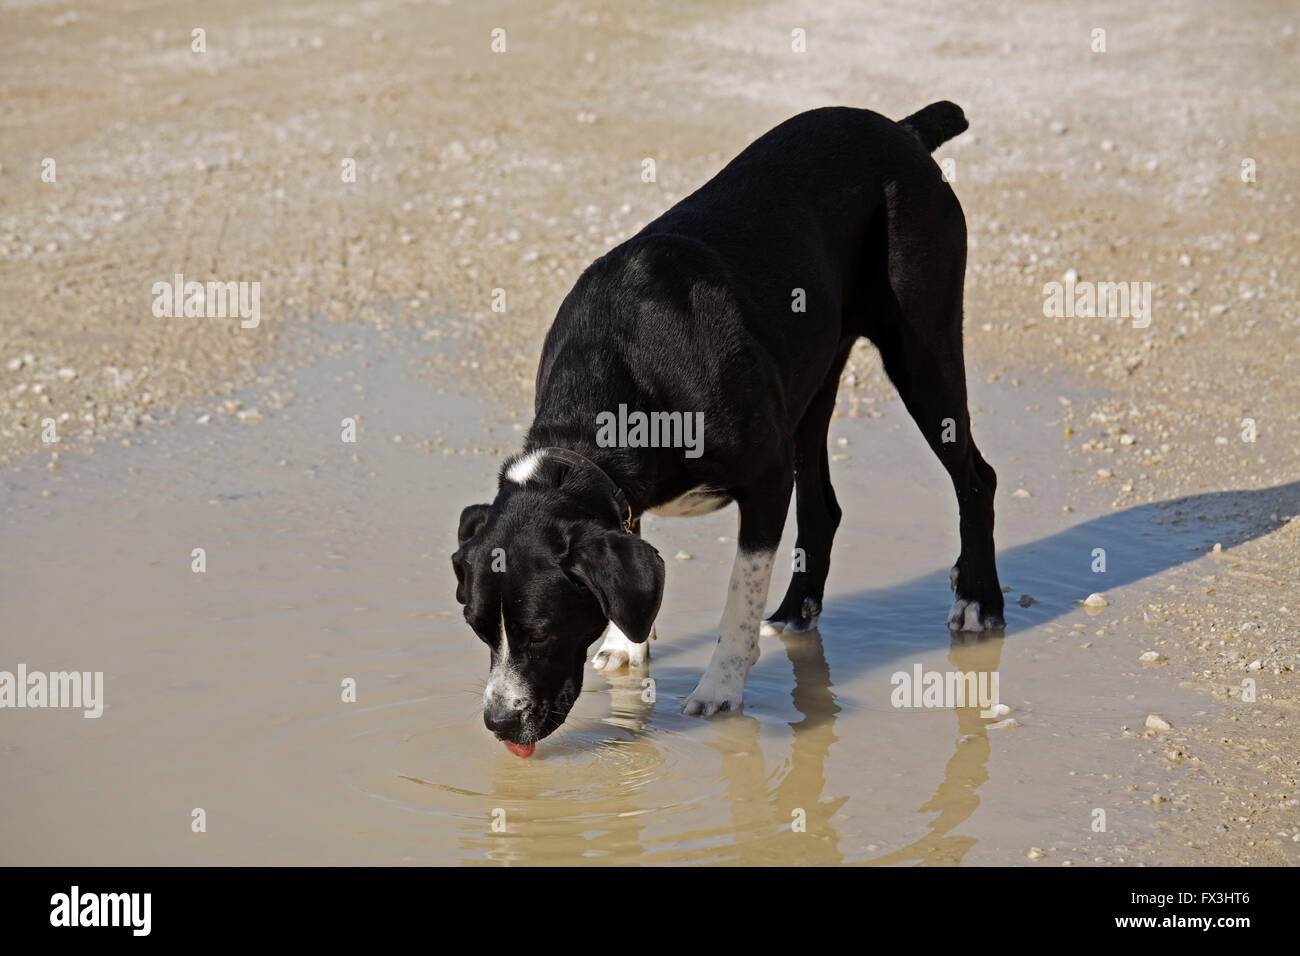 Dog drinking water from a puddle - Stock Image